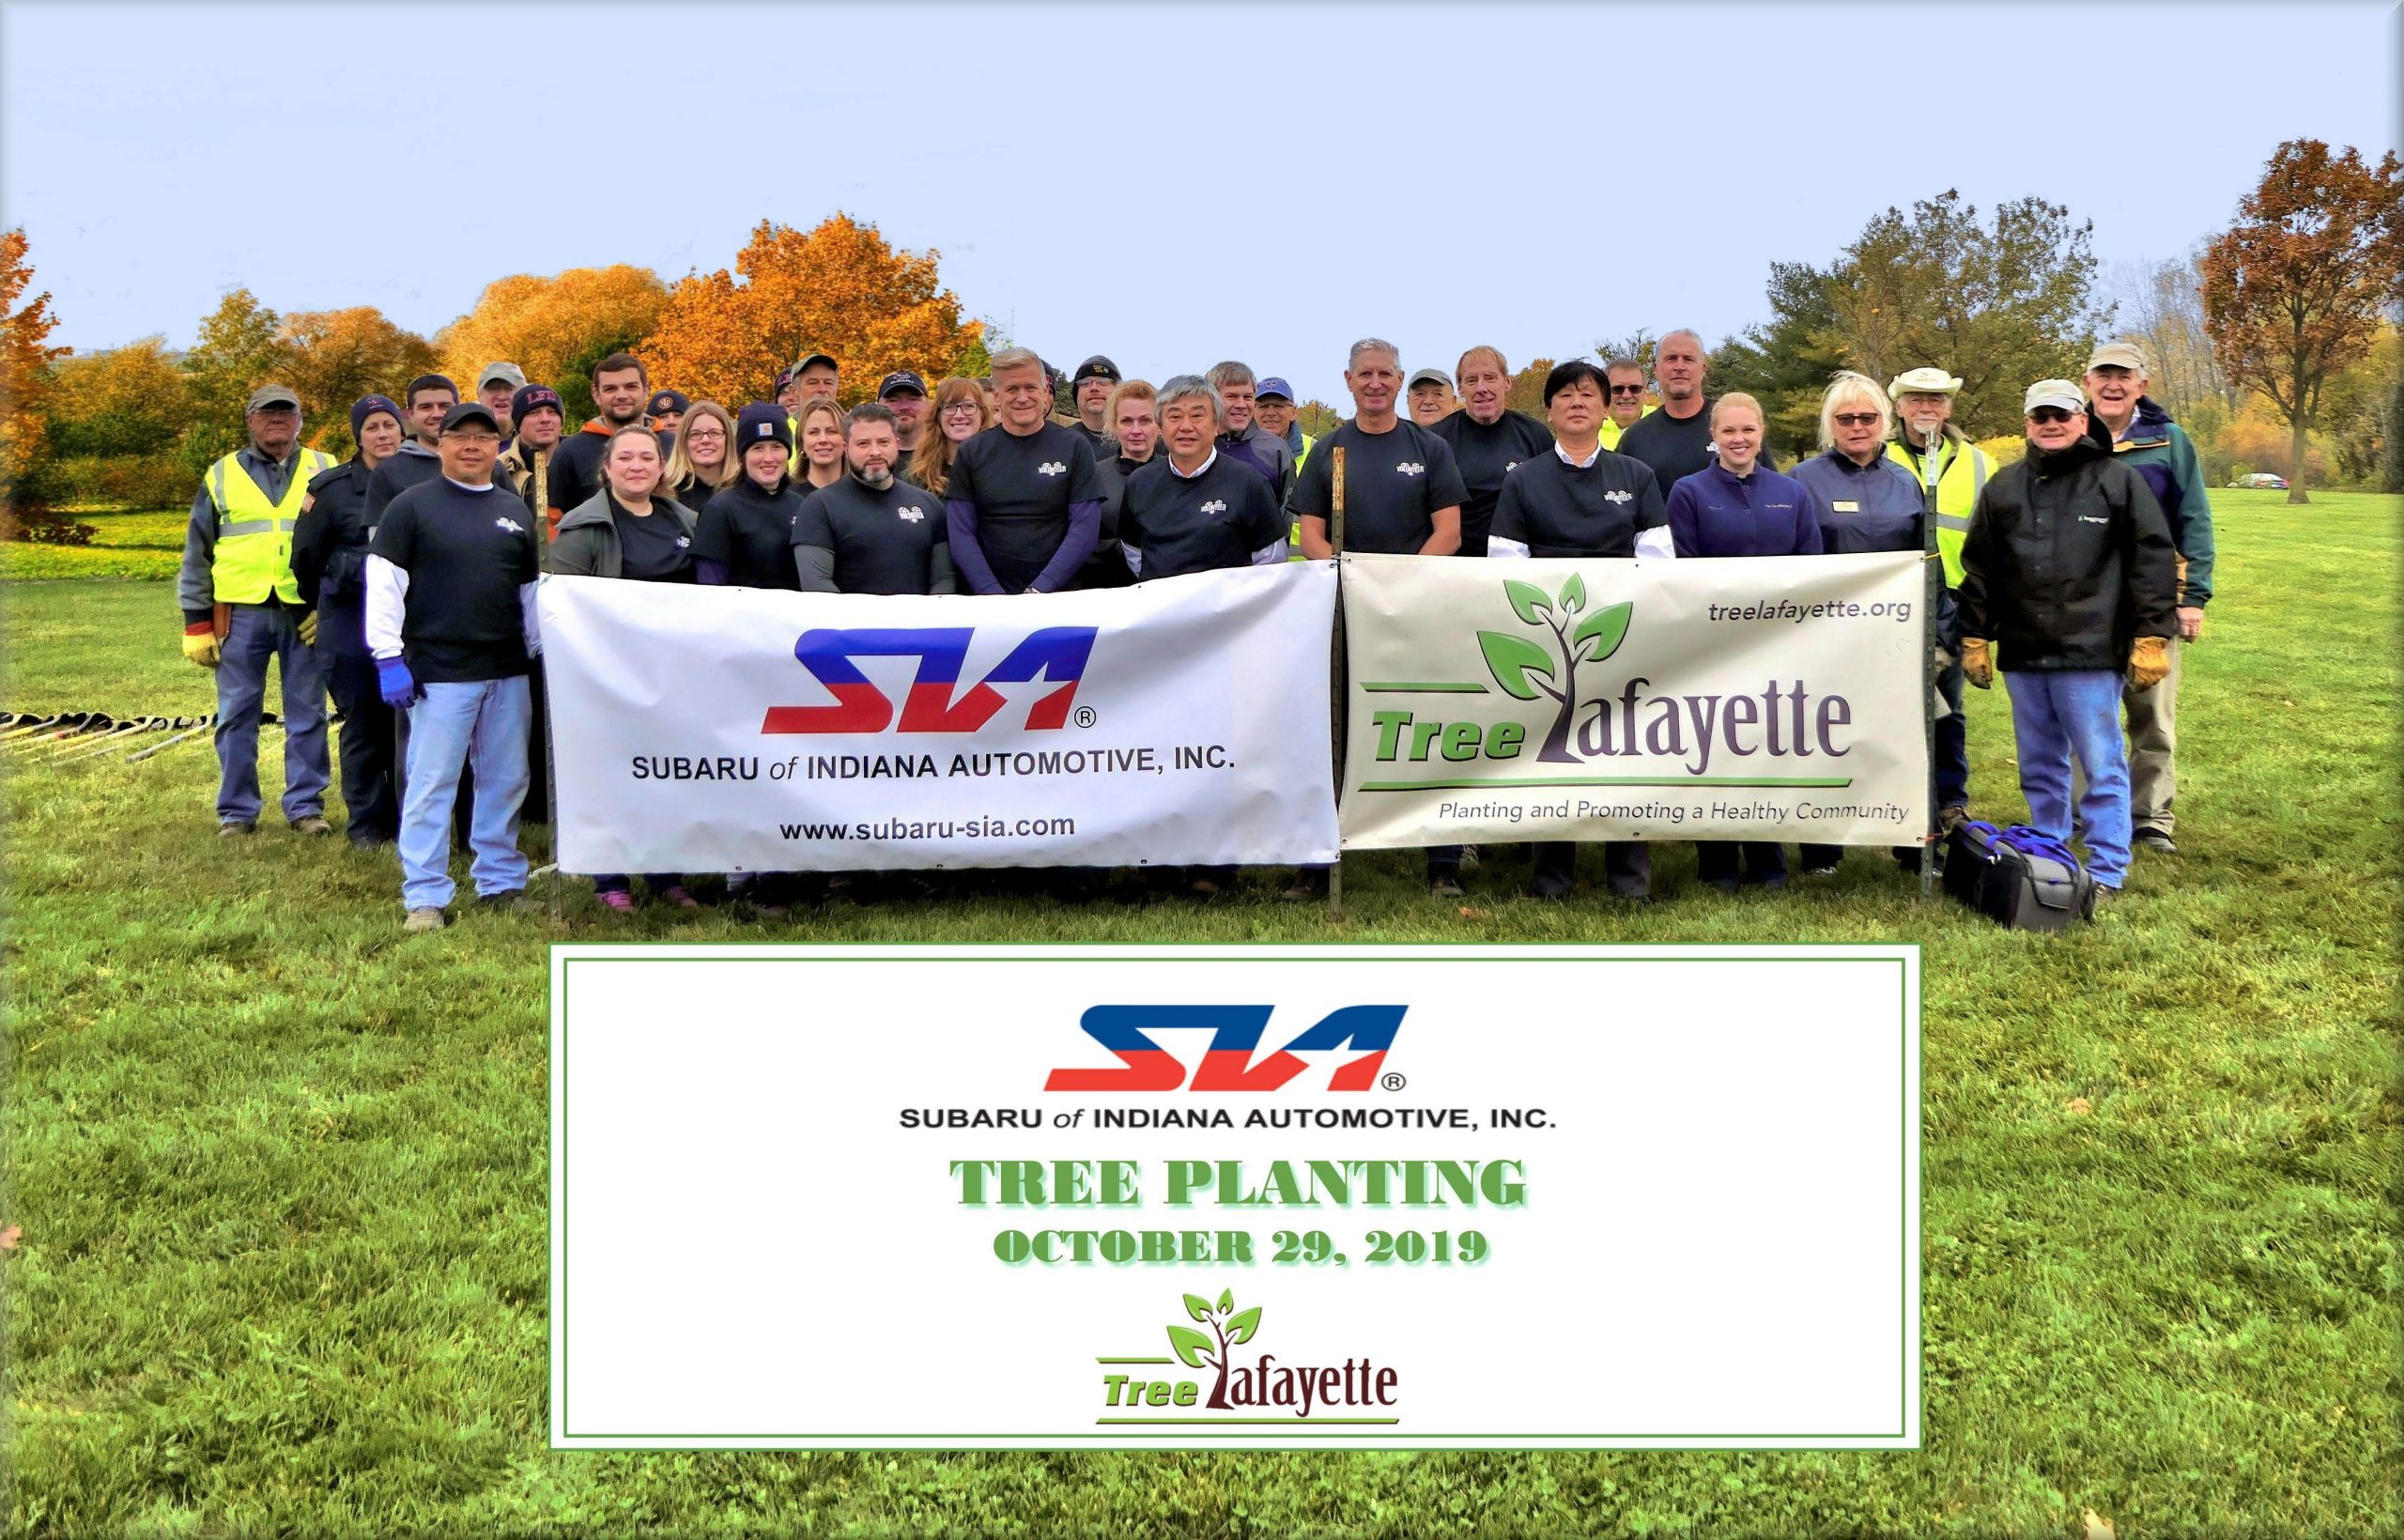 Fire Station tree planting